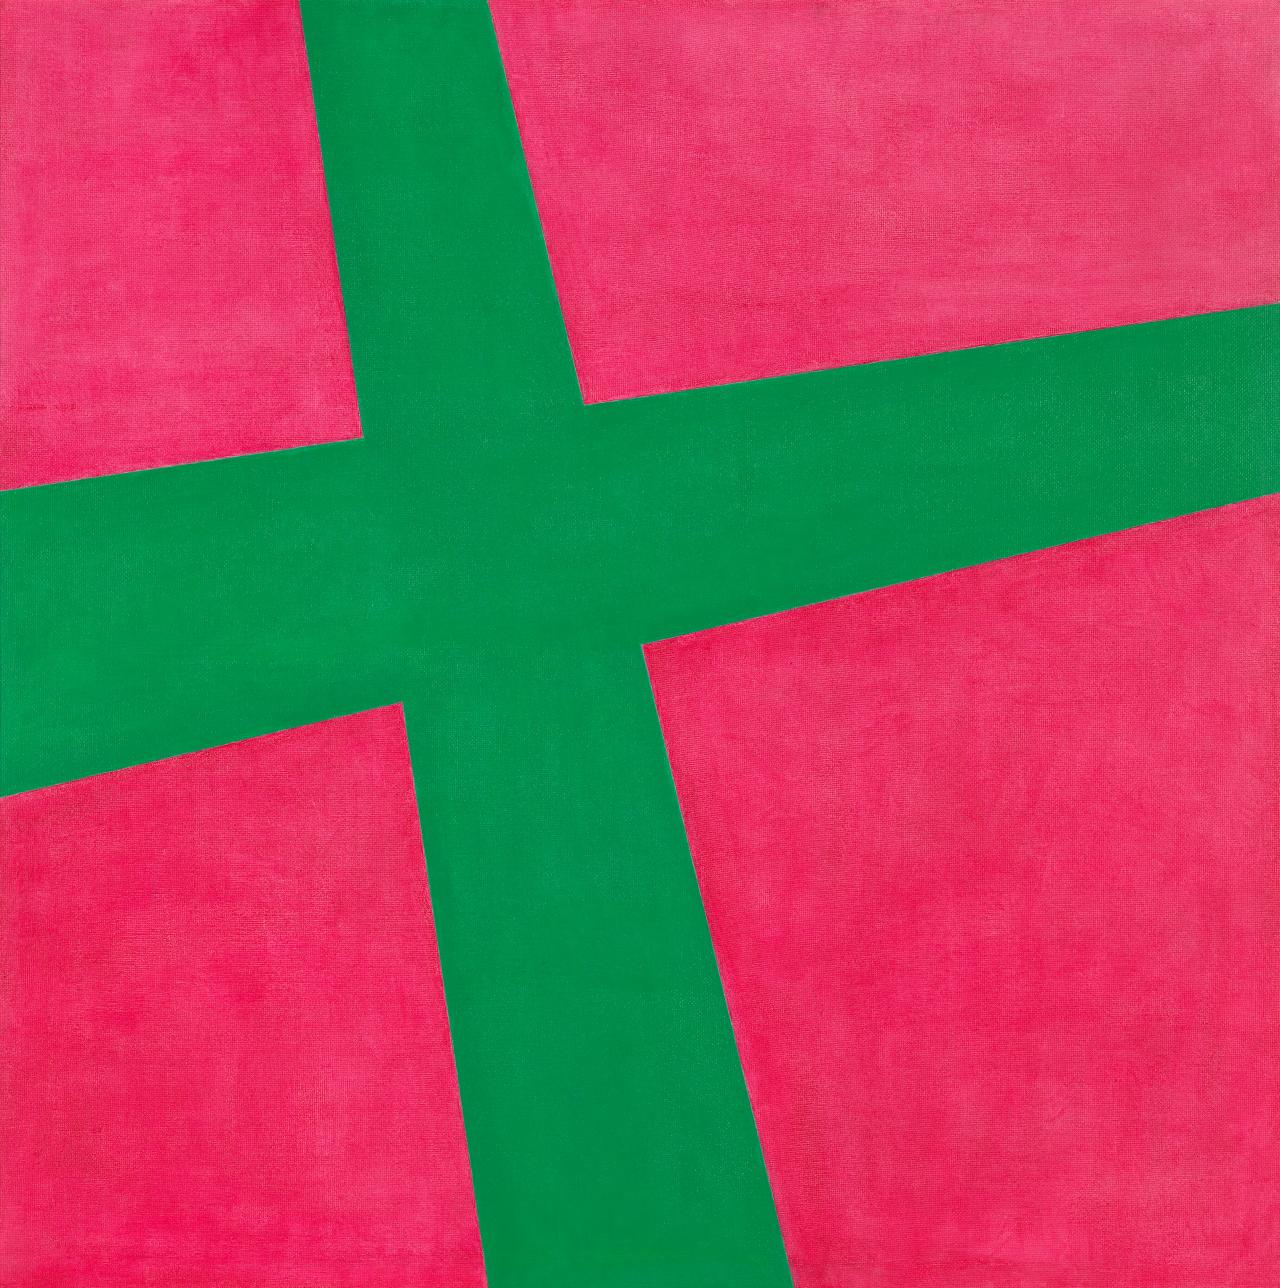 Red / green cross